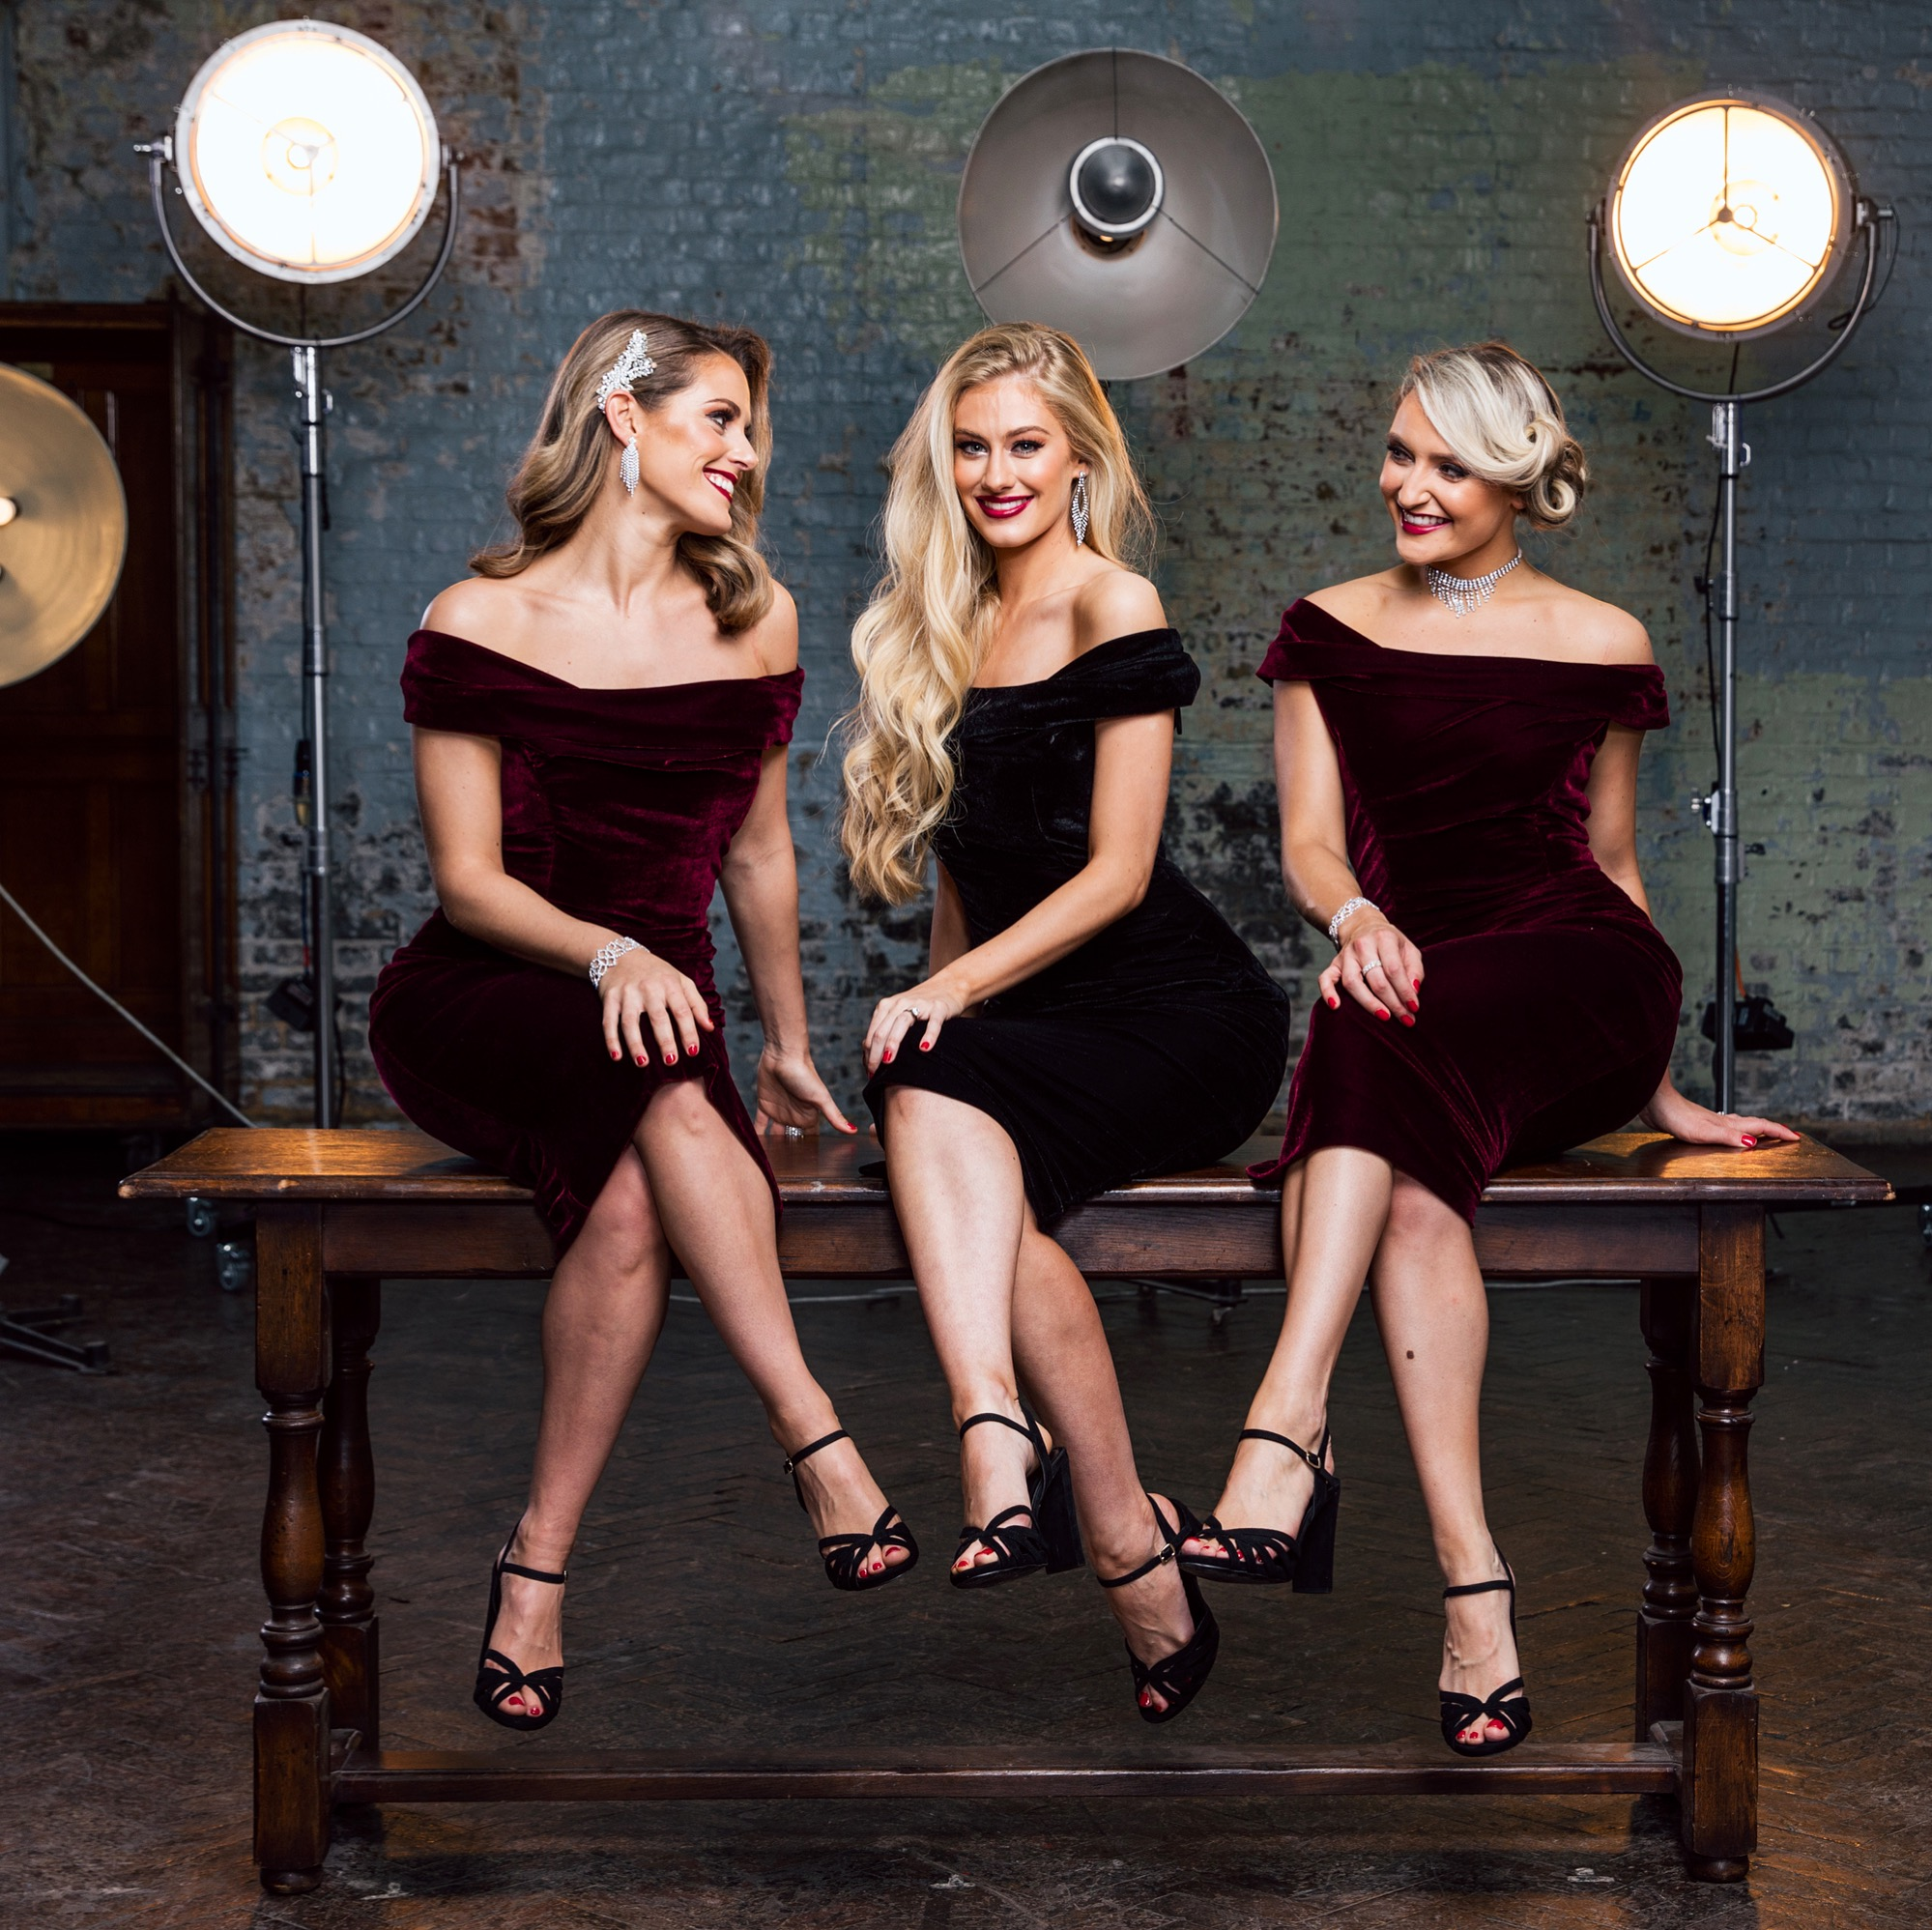 Roxy bring glitz and glamour to any occasion with their stunning vocal harmonies and slick choreography.